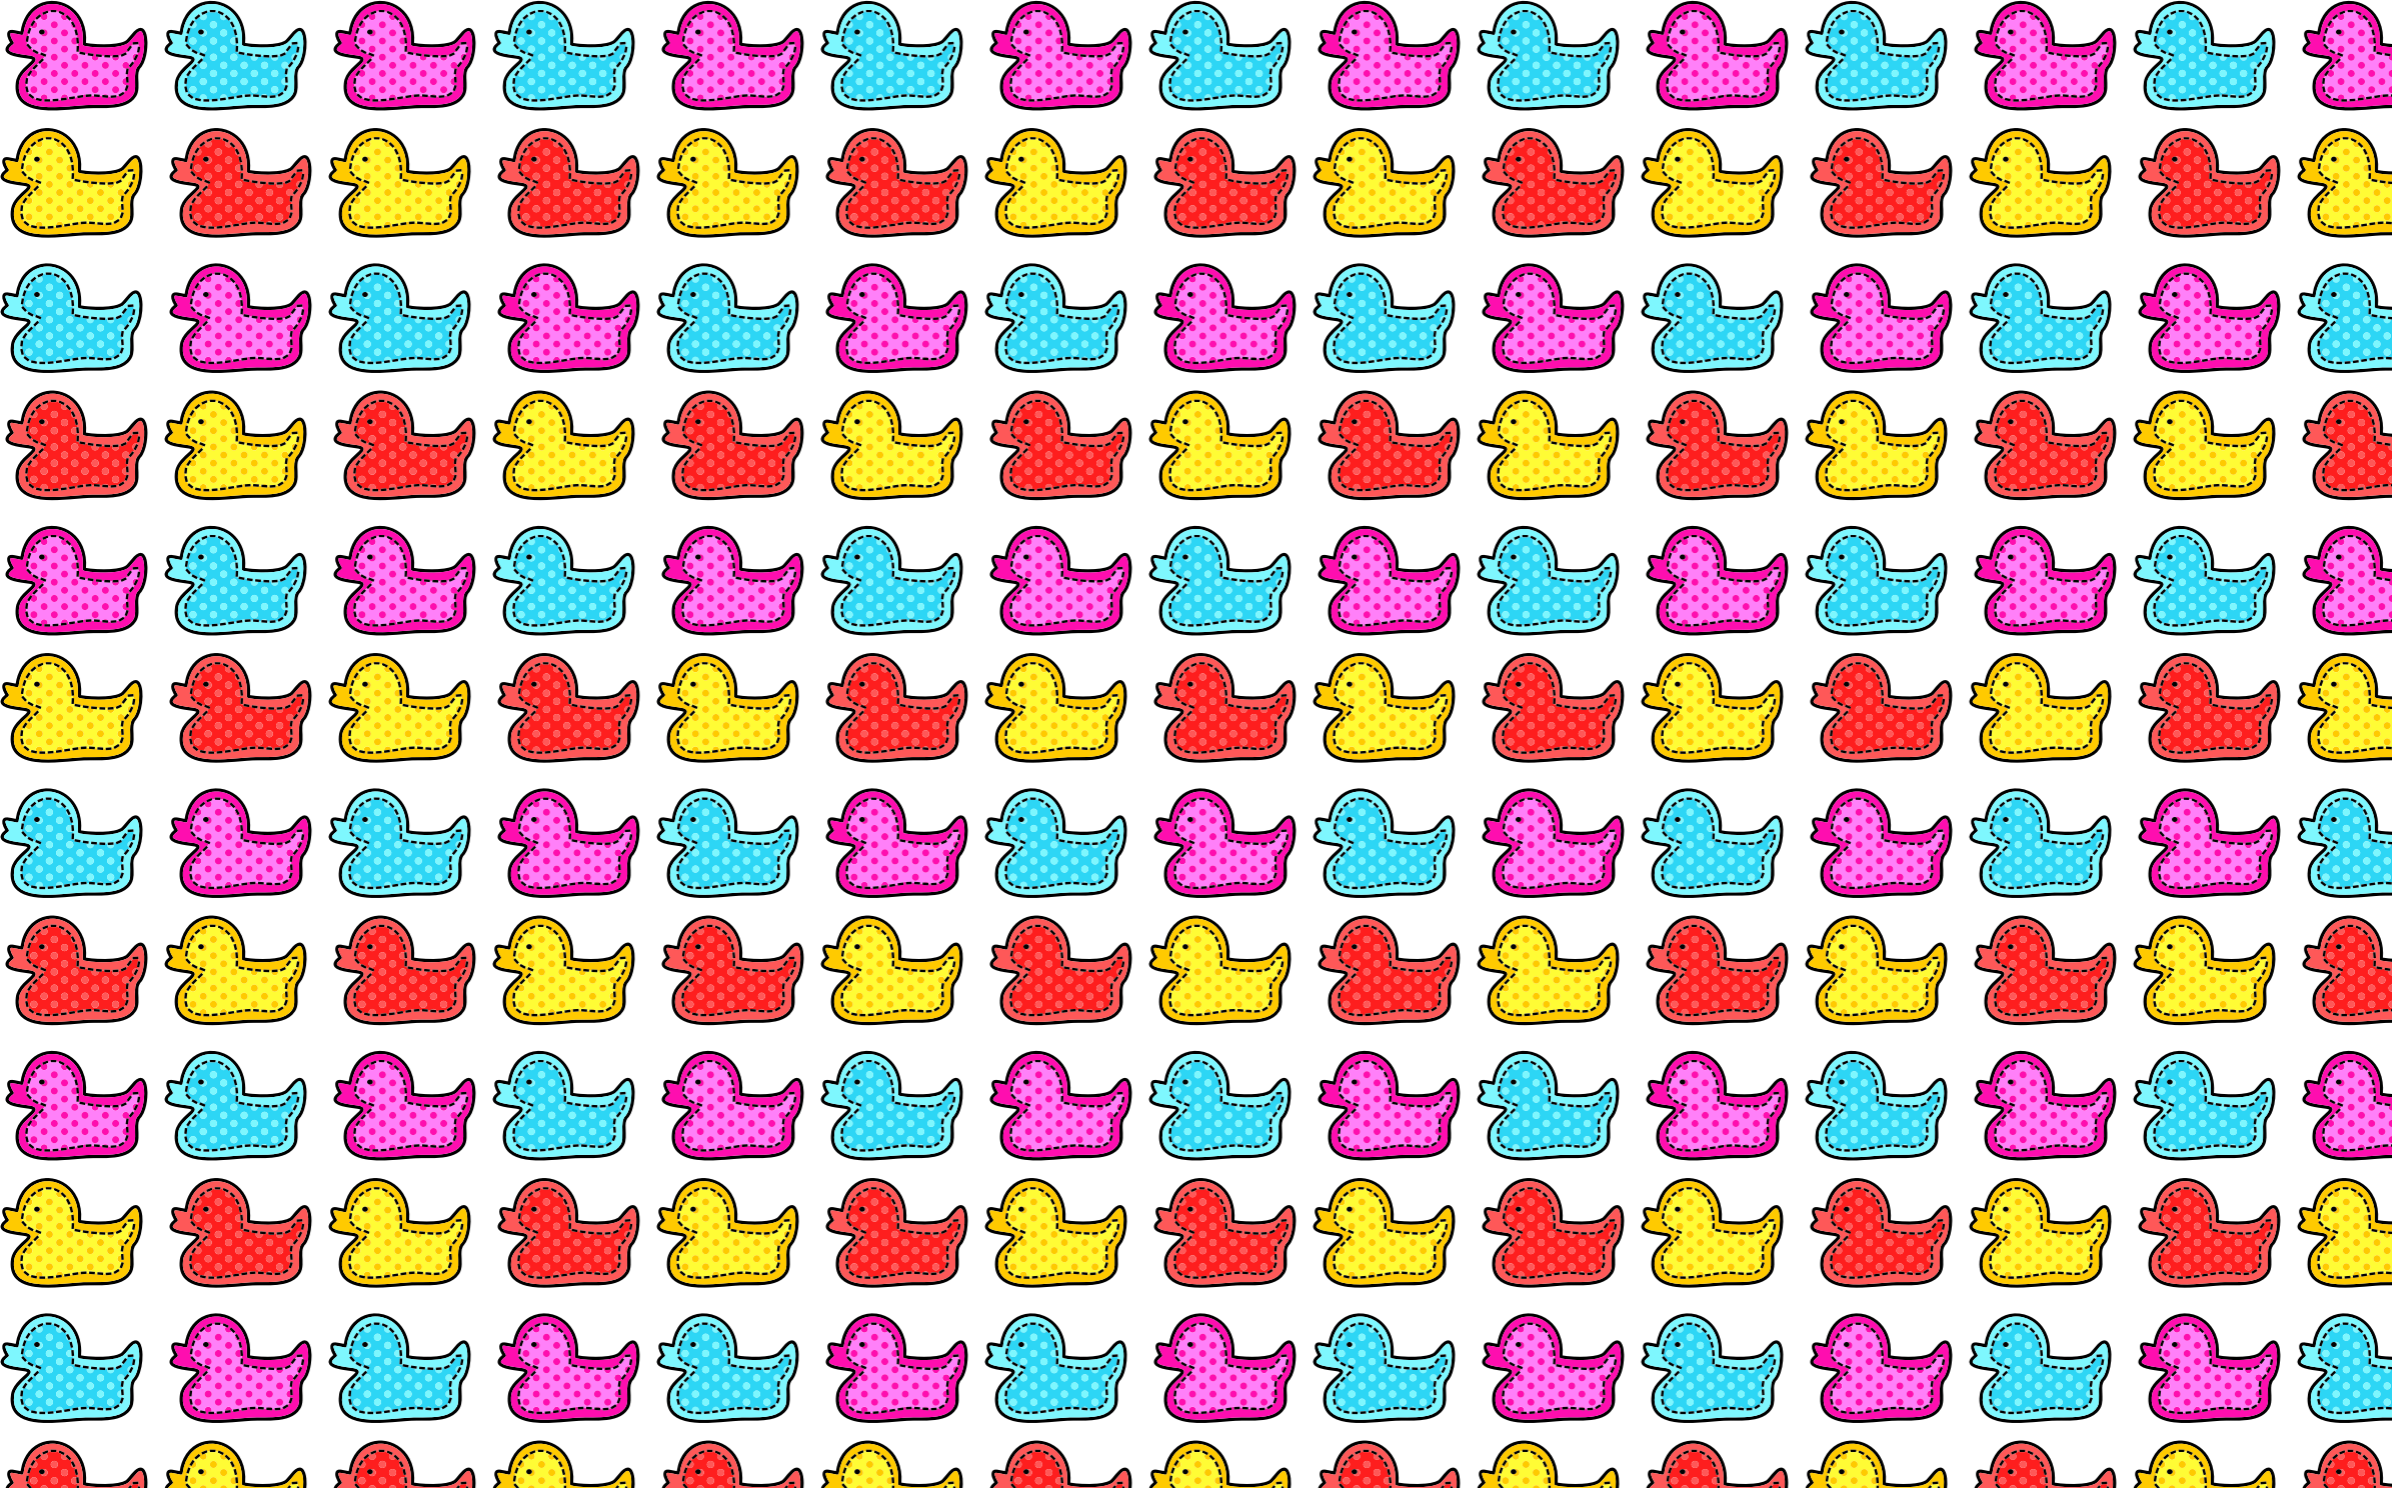 Colorful Stitched Ducks Seamless Pattern by GDJ